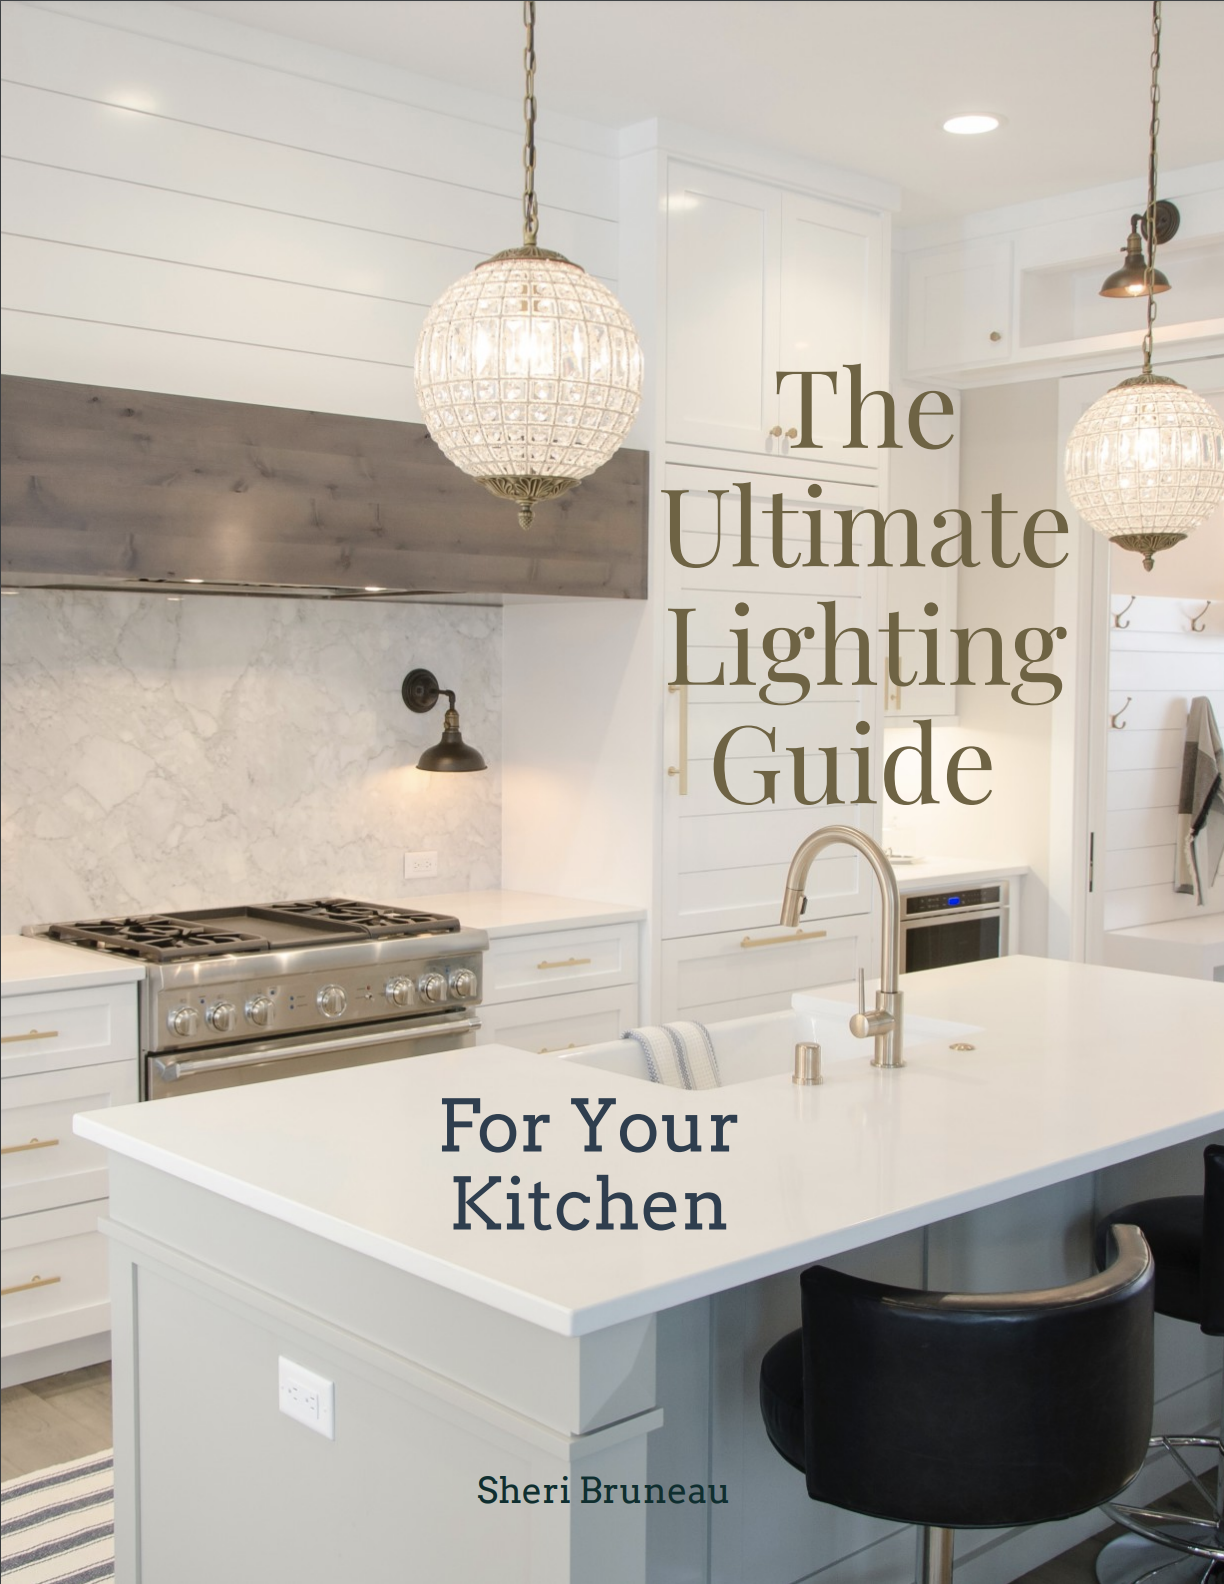 The Ultimate Lighting Guide for Kitchens.png